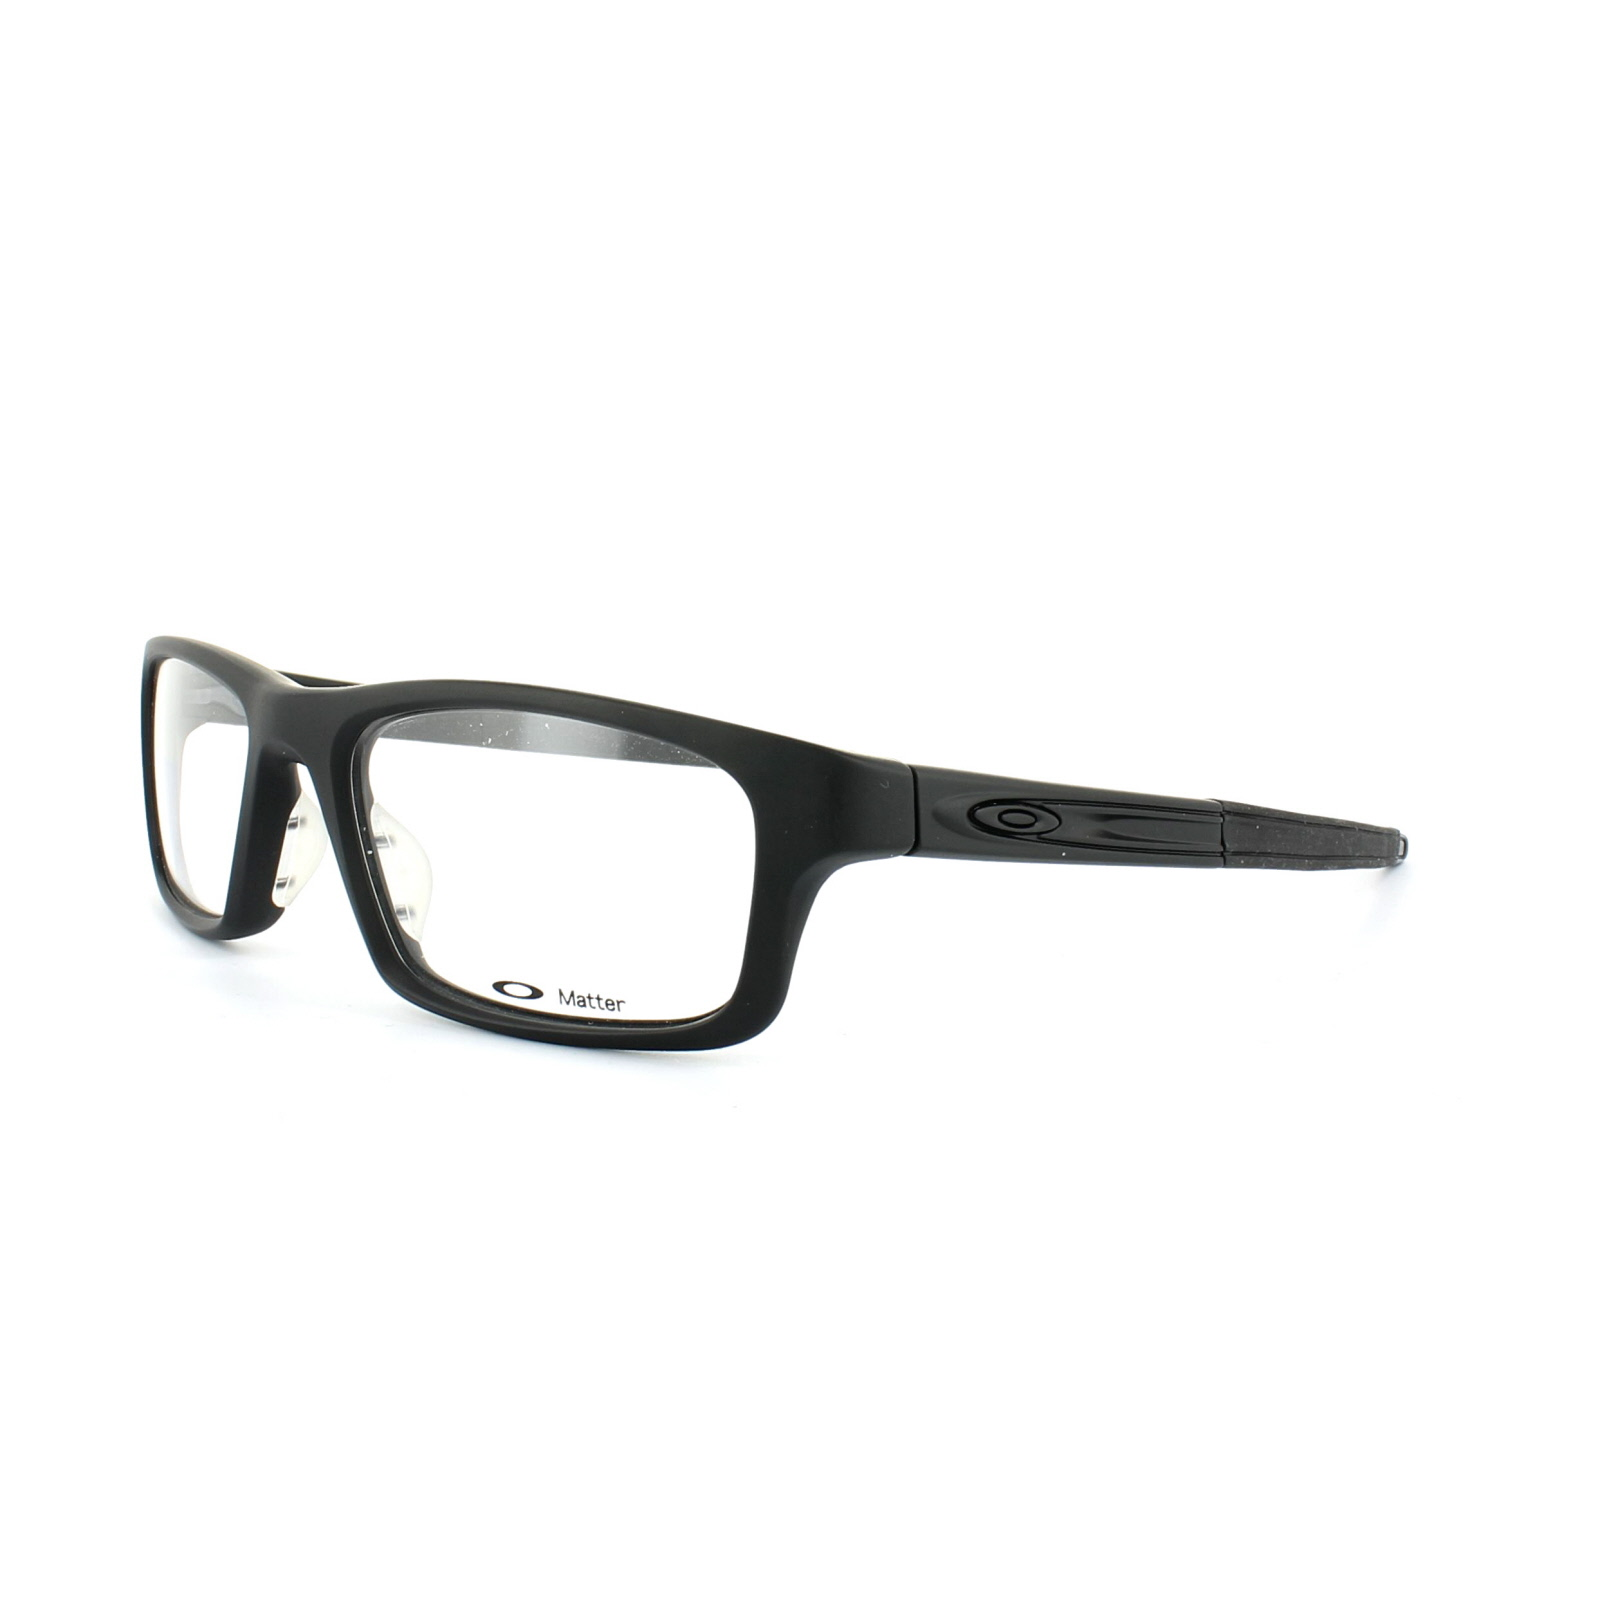 02a1dab312 Oakley Crosslink Pitch Satin Black « Heritage Malta